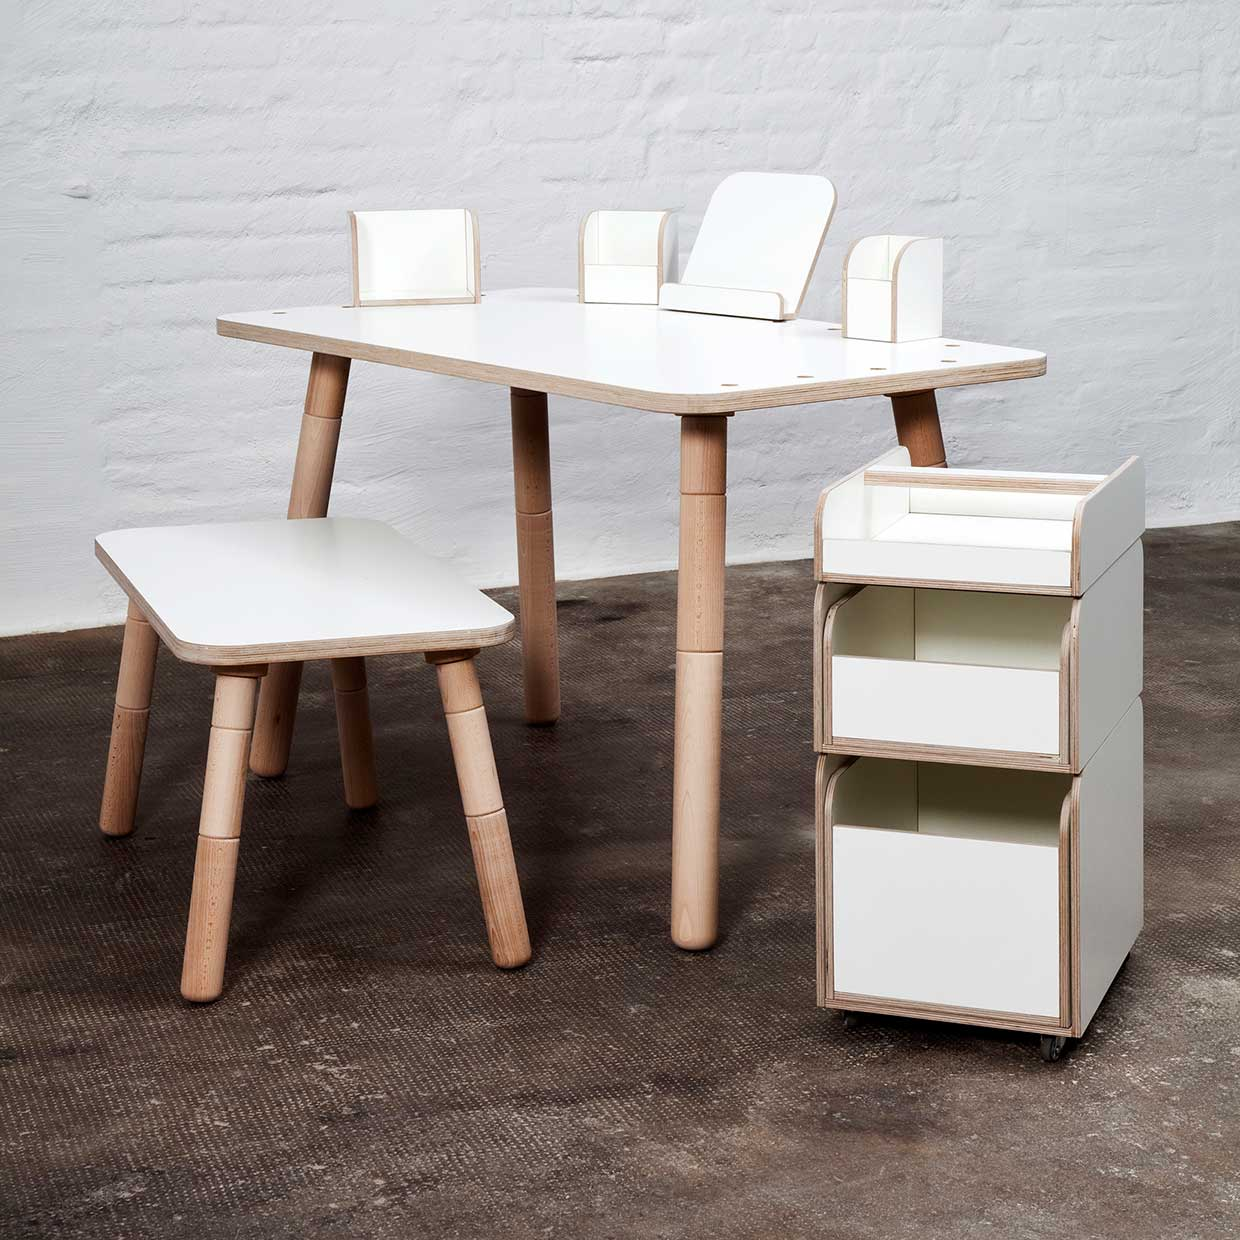 growing table – desk for children that grows with them - prev